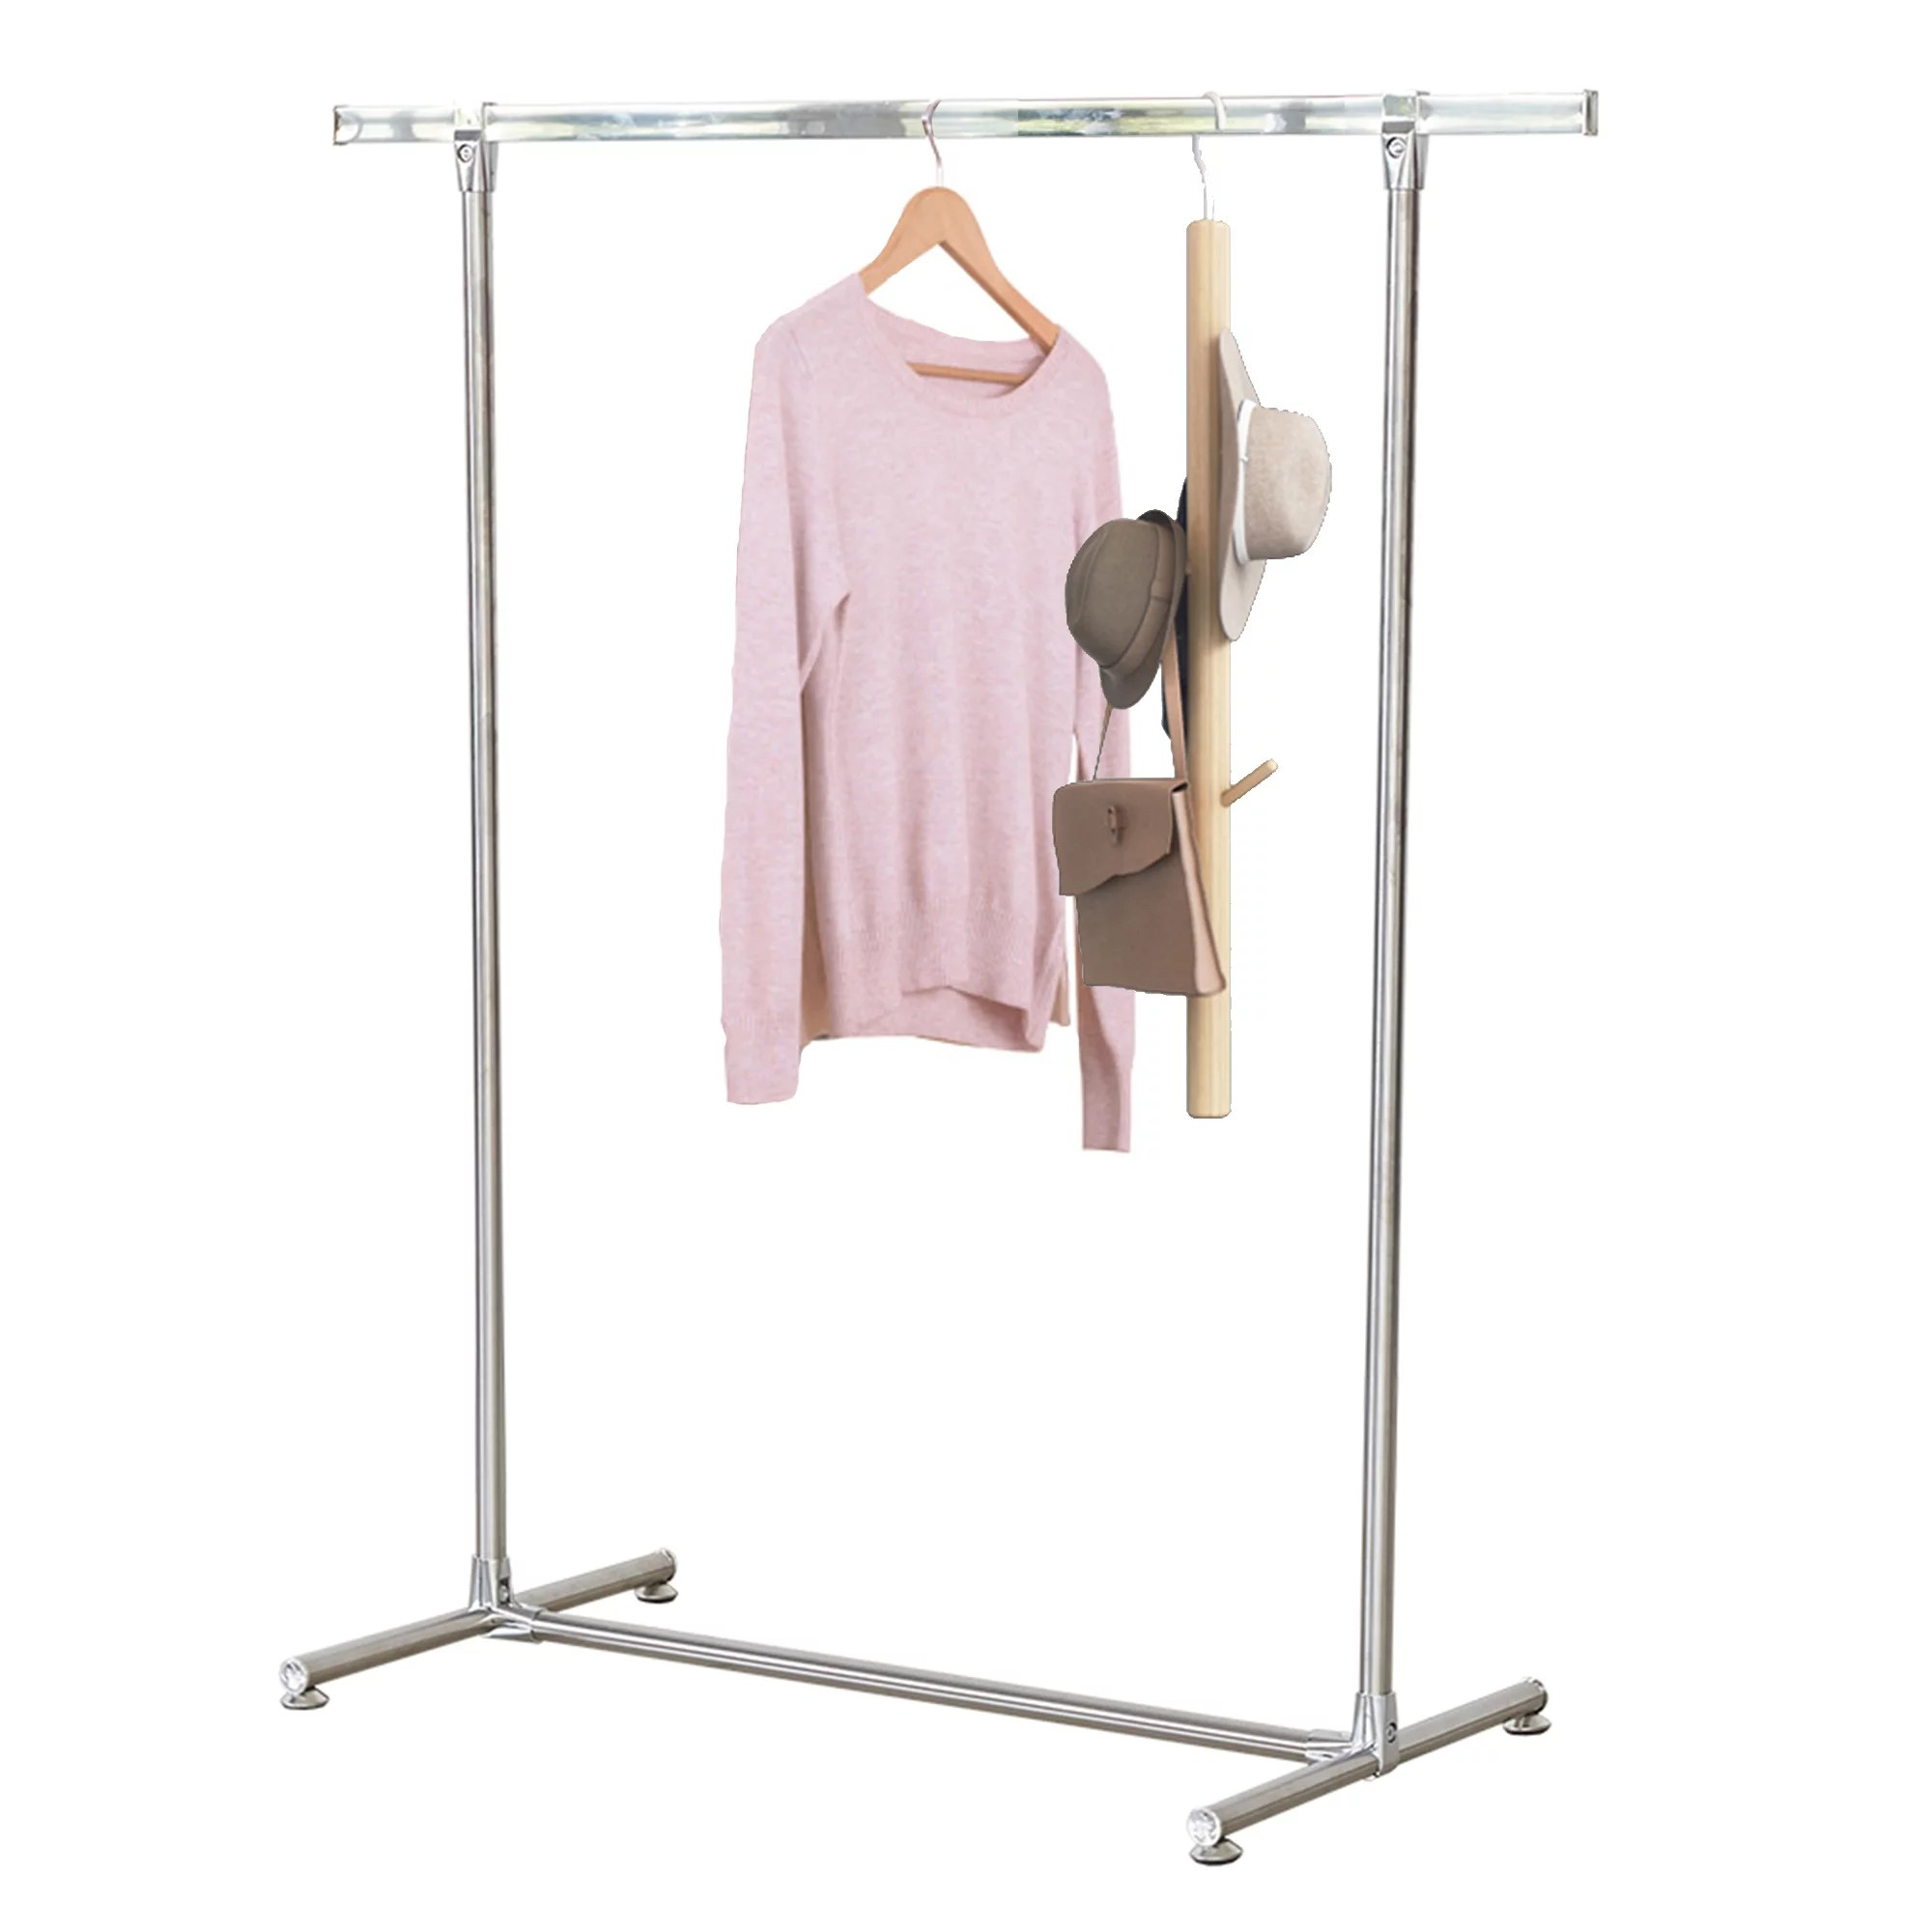 karmas product sturdy clothes garment rack stainless steel heavy duty hanging clothing rack